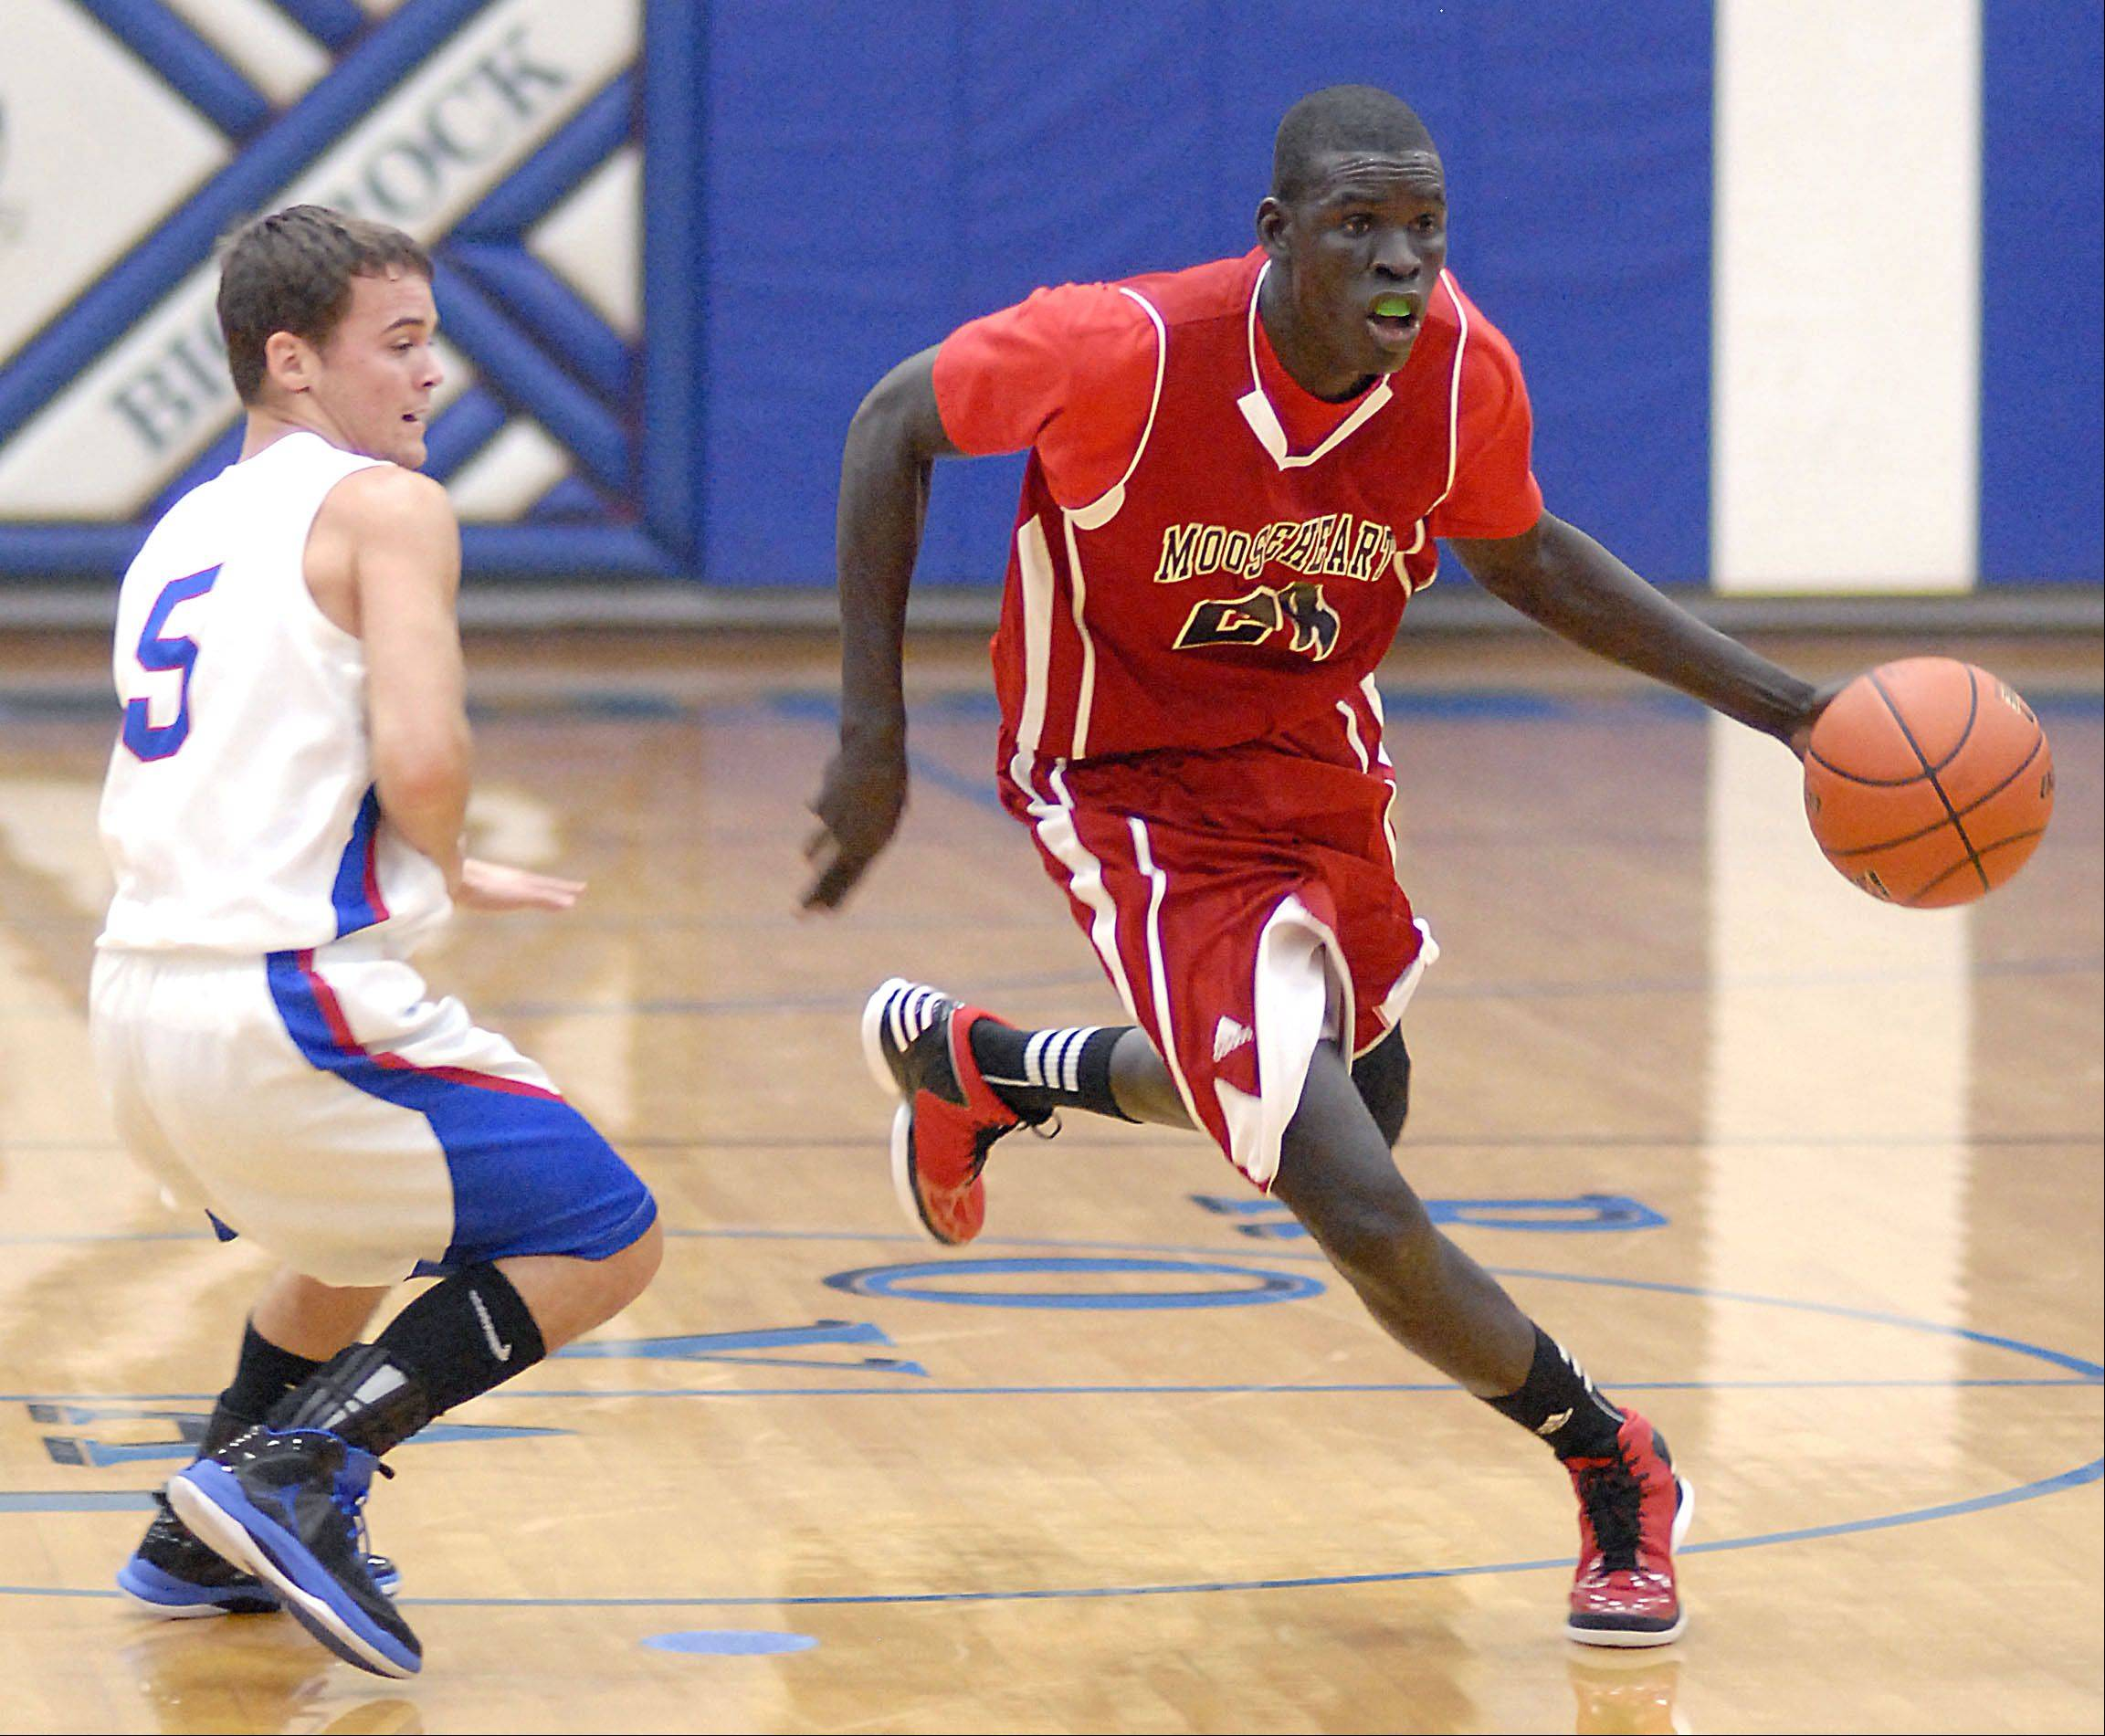 Mooseheart's Mangisto Deng speeds past Hinckley-Big Rock's Bernie Conley in the first quarter.